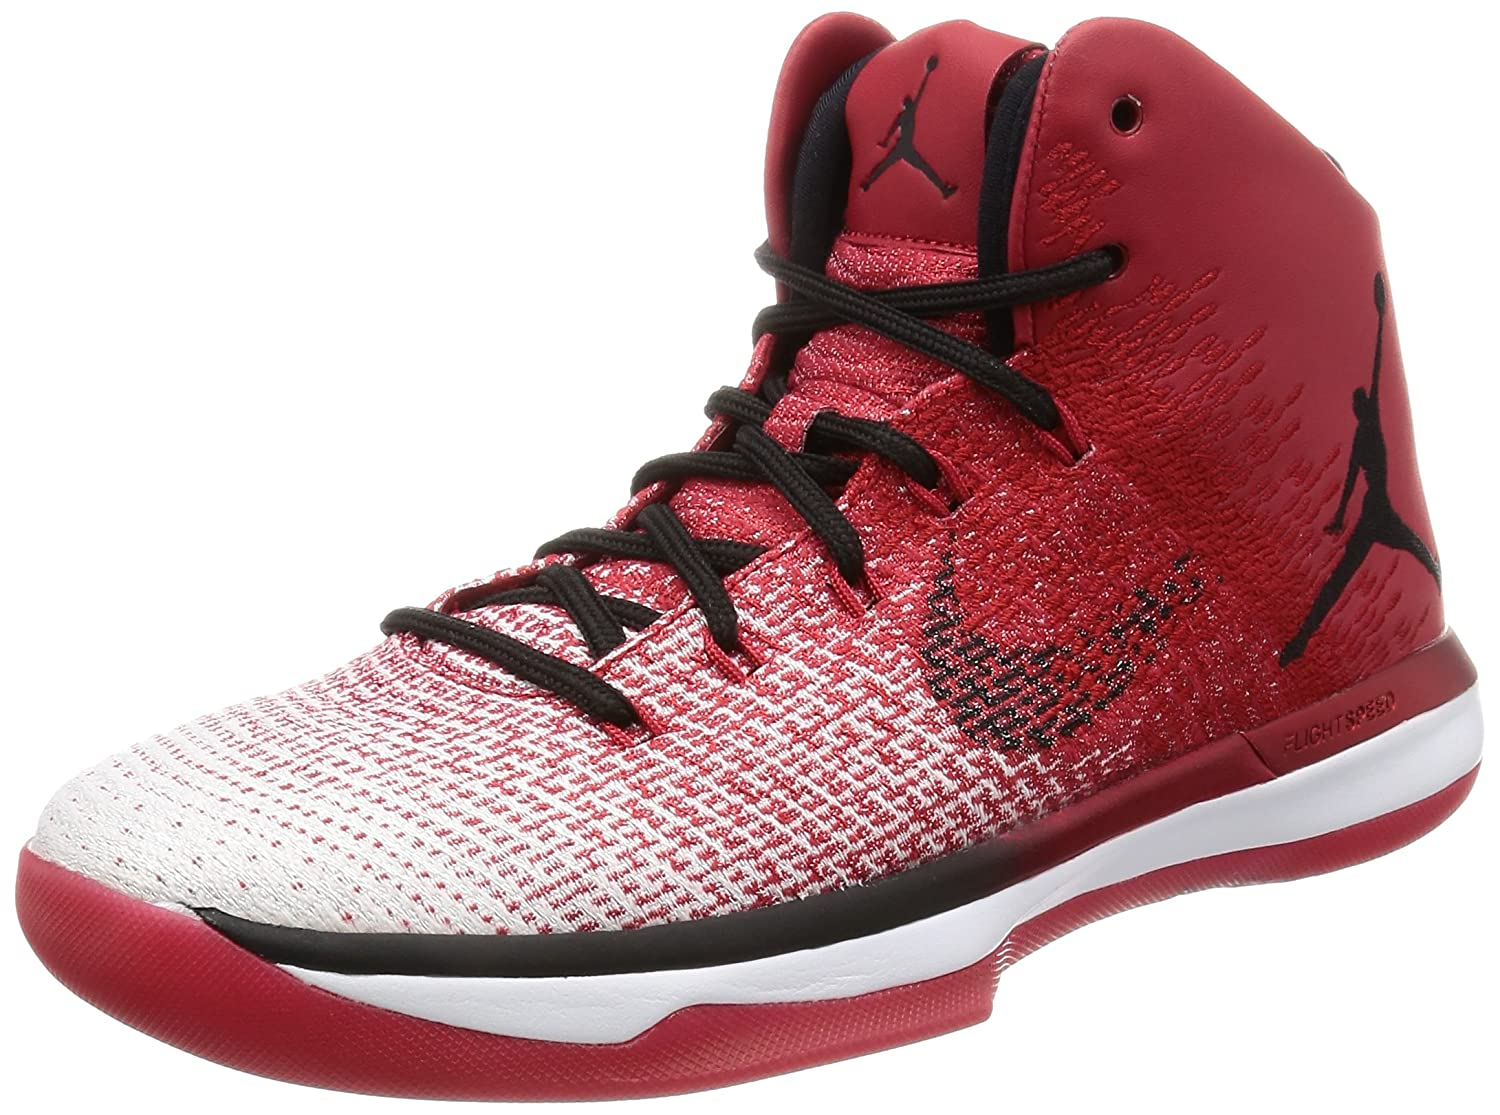 Amazon.com | Nike Mens Air Jordan XXXI Basketball Shoes Varsity  Red/Black/White 845037-600 Size 10 | Basketball